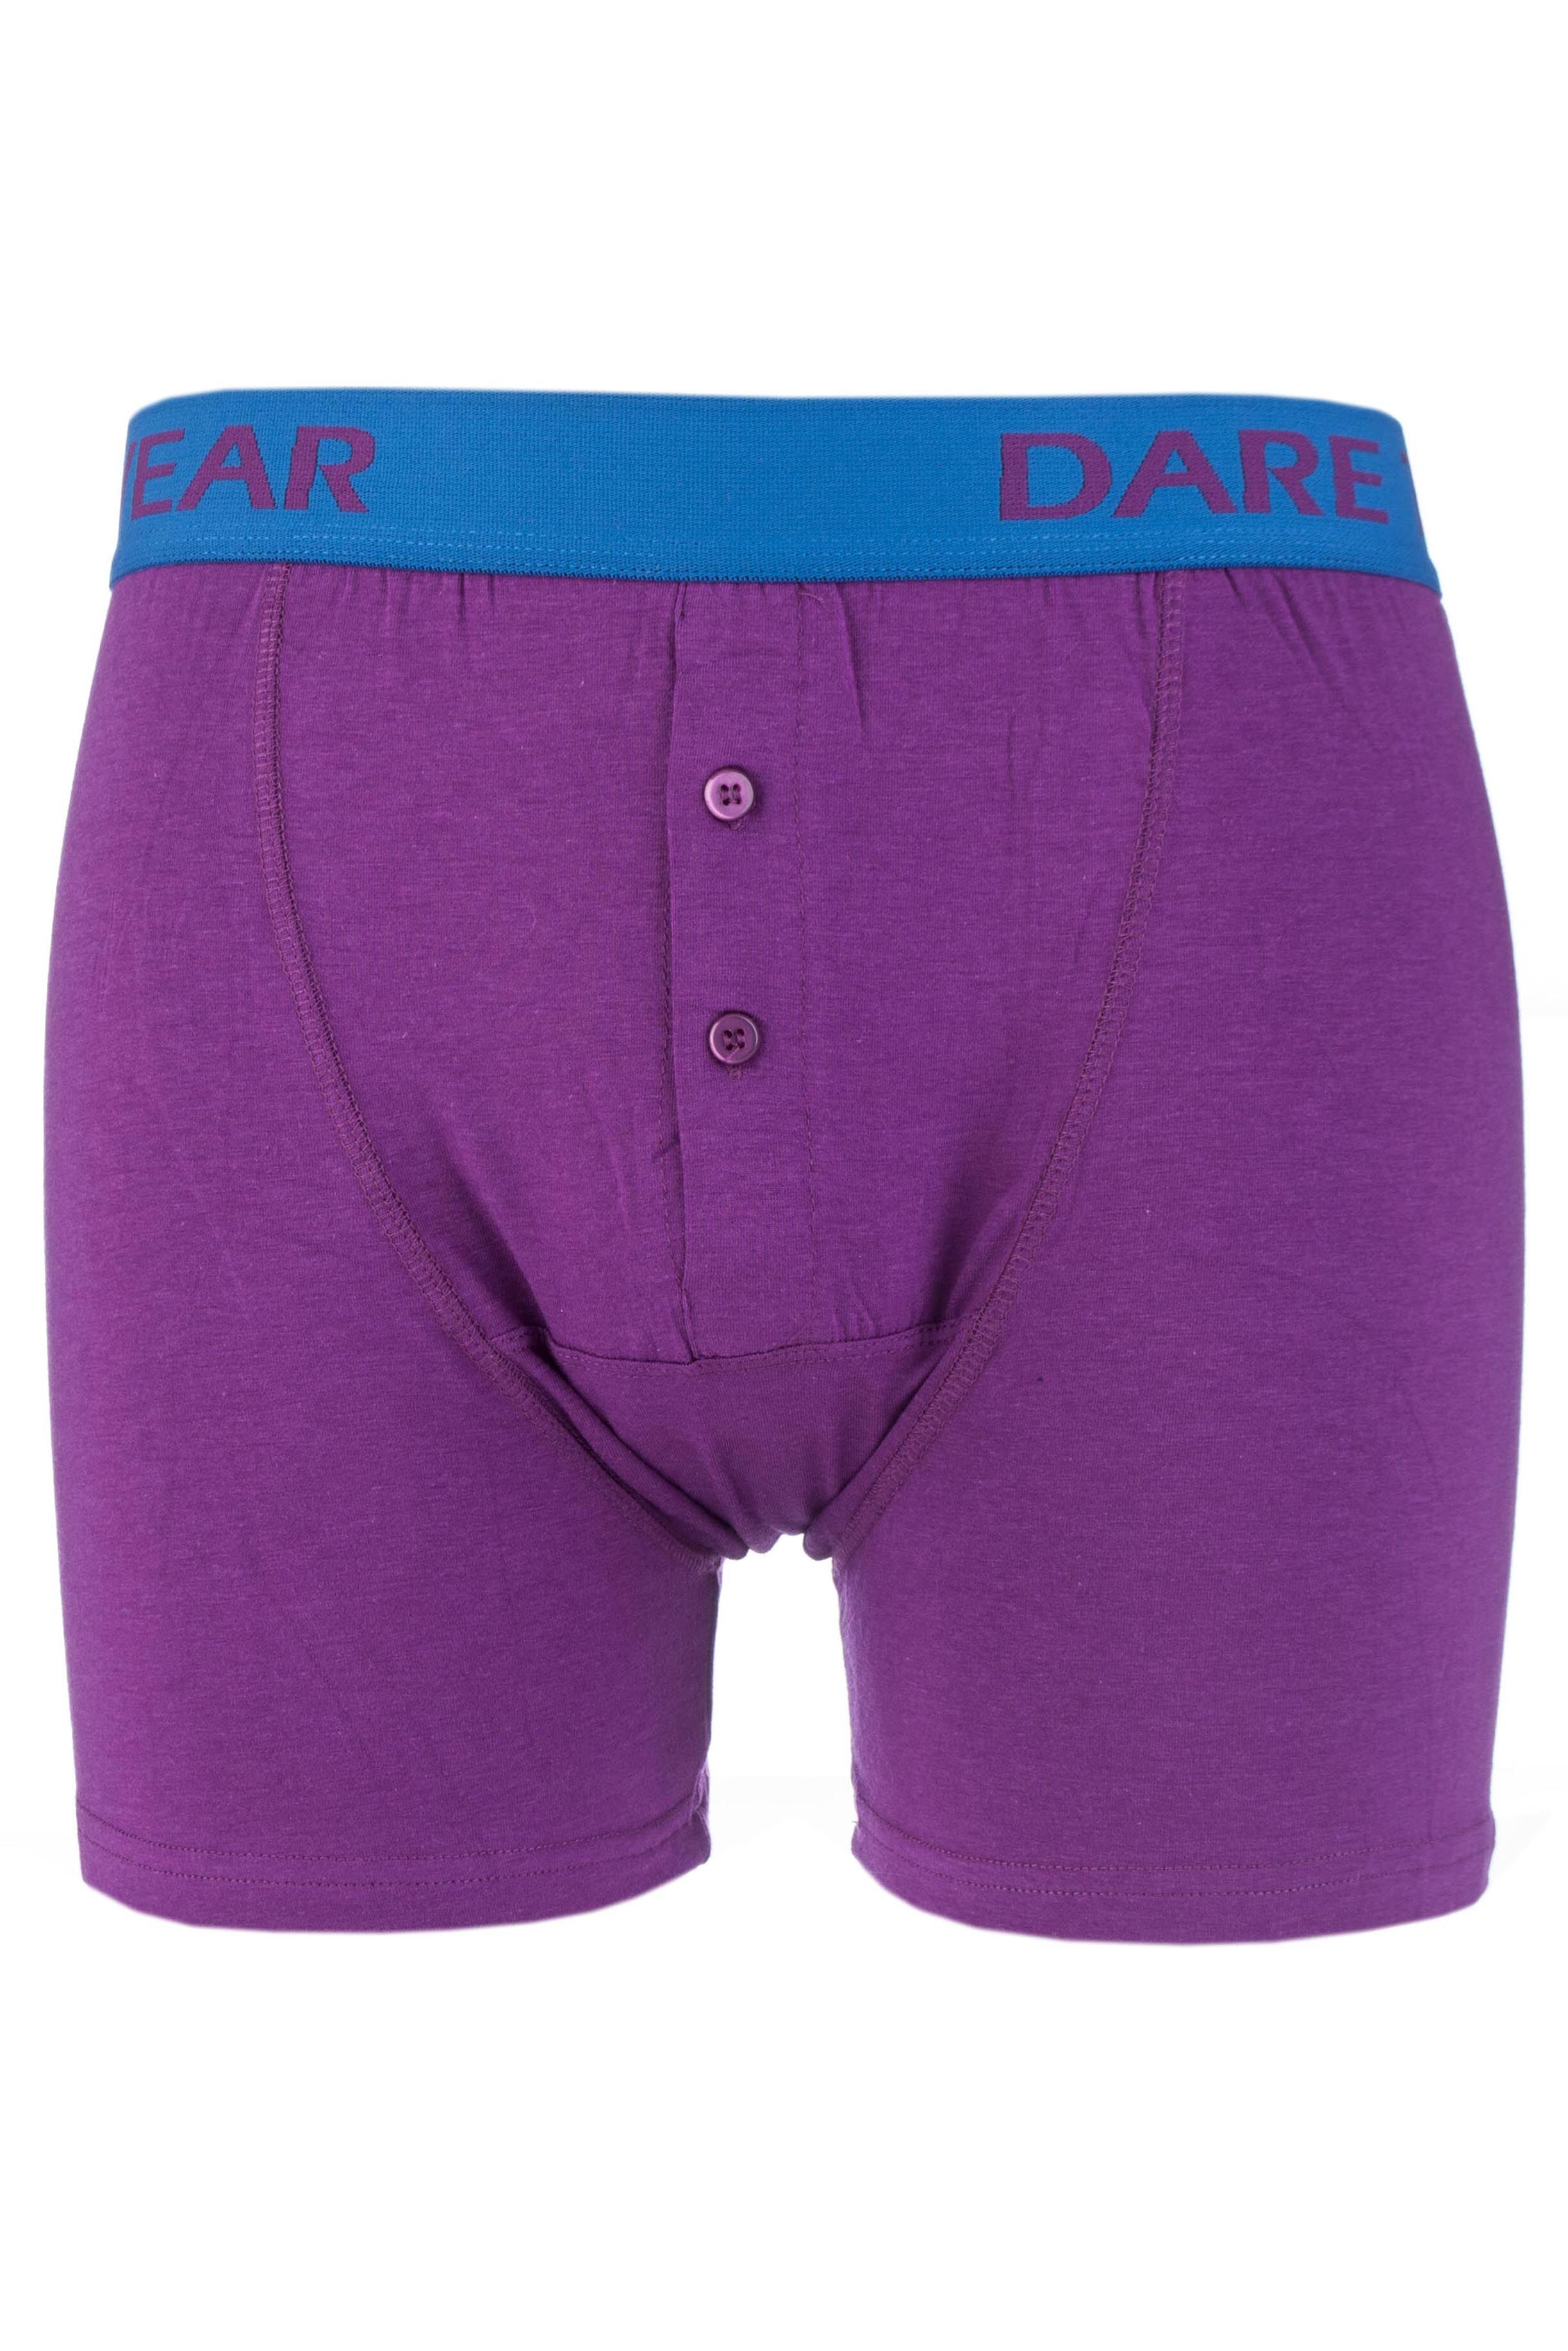 Image of 1 Pack Elderberry Dare to Wear Bamboo Button Front Boxer Trunks Men's Small - SOCKSHOP